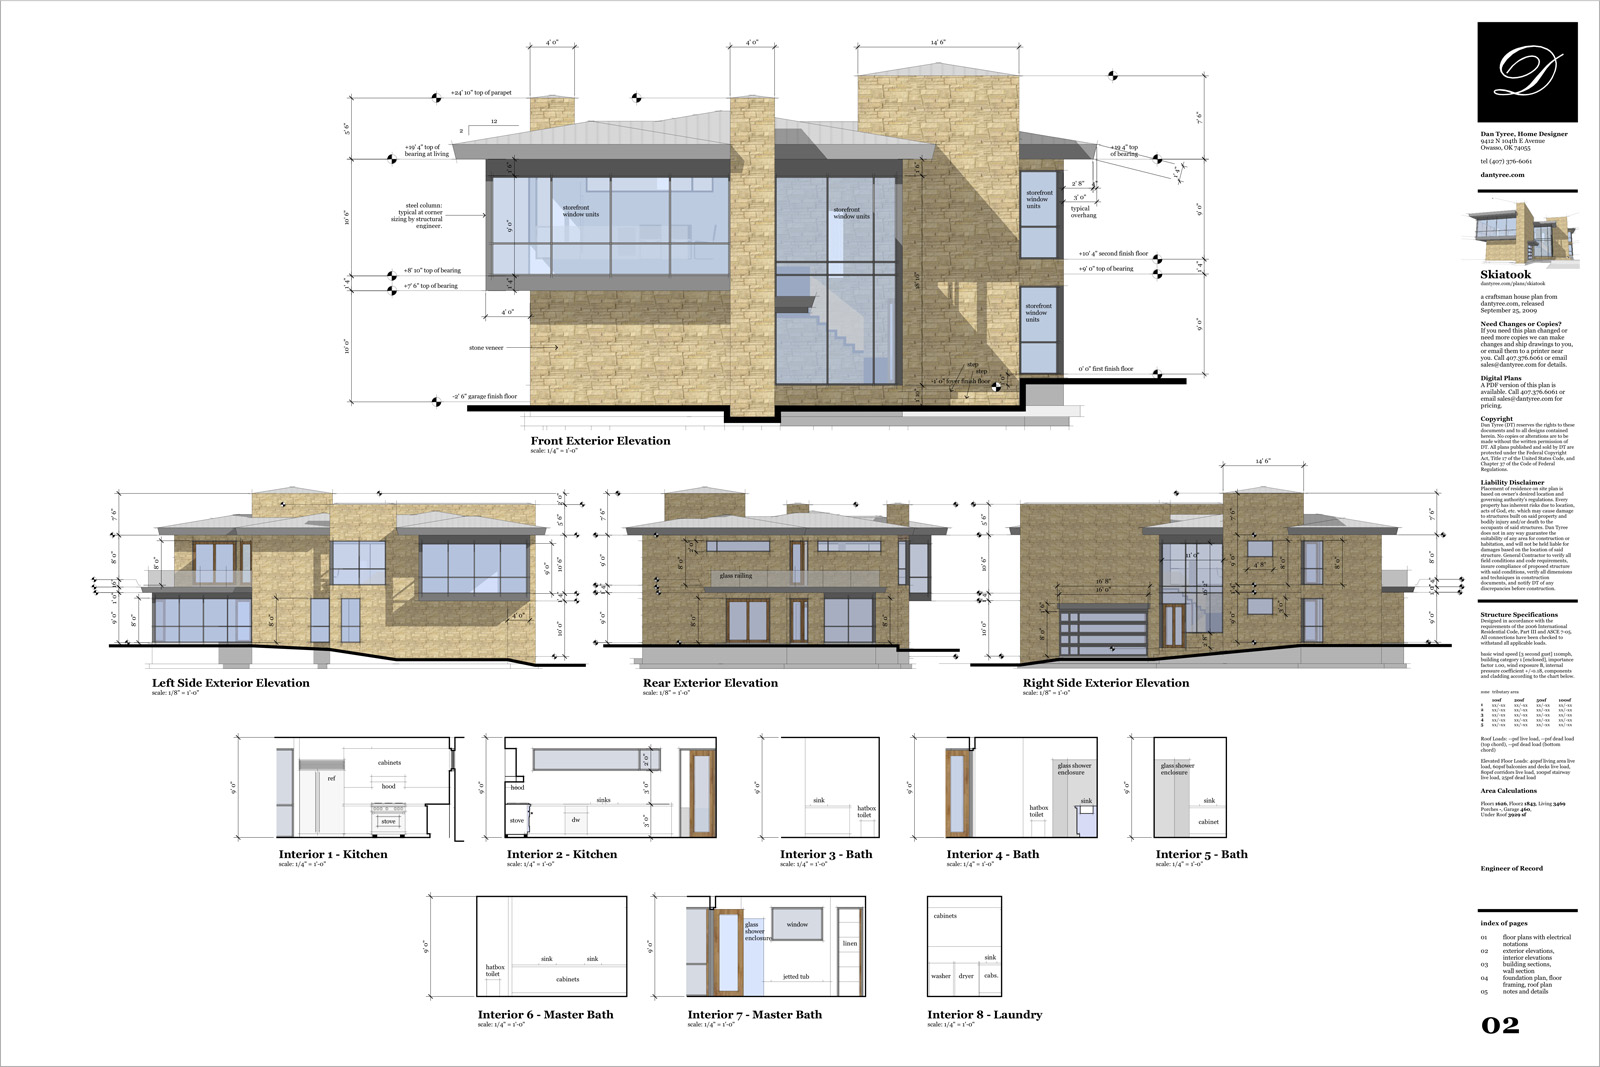 Retired sketchup blog sketchup pro case study dan tyree for Floor plans in sketchup